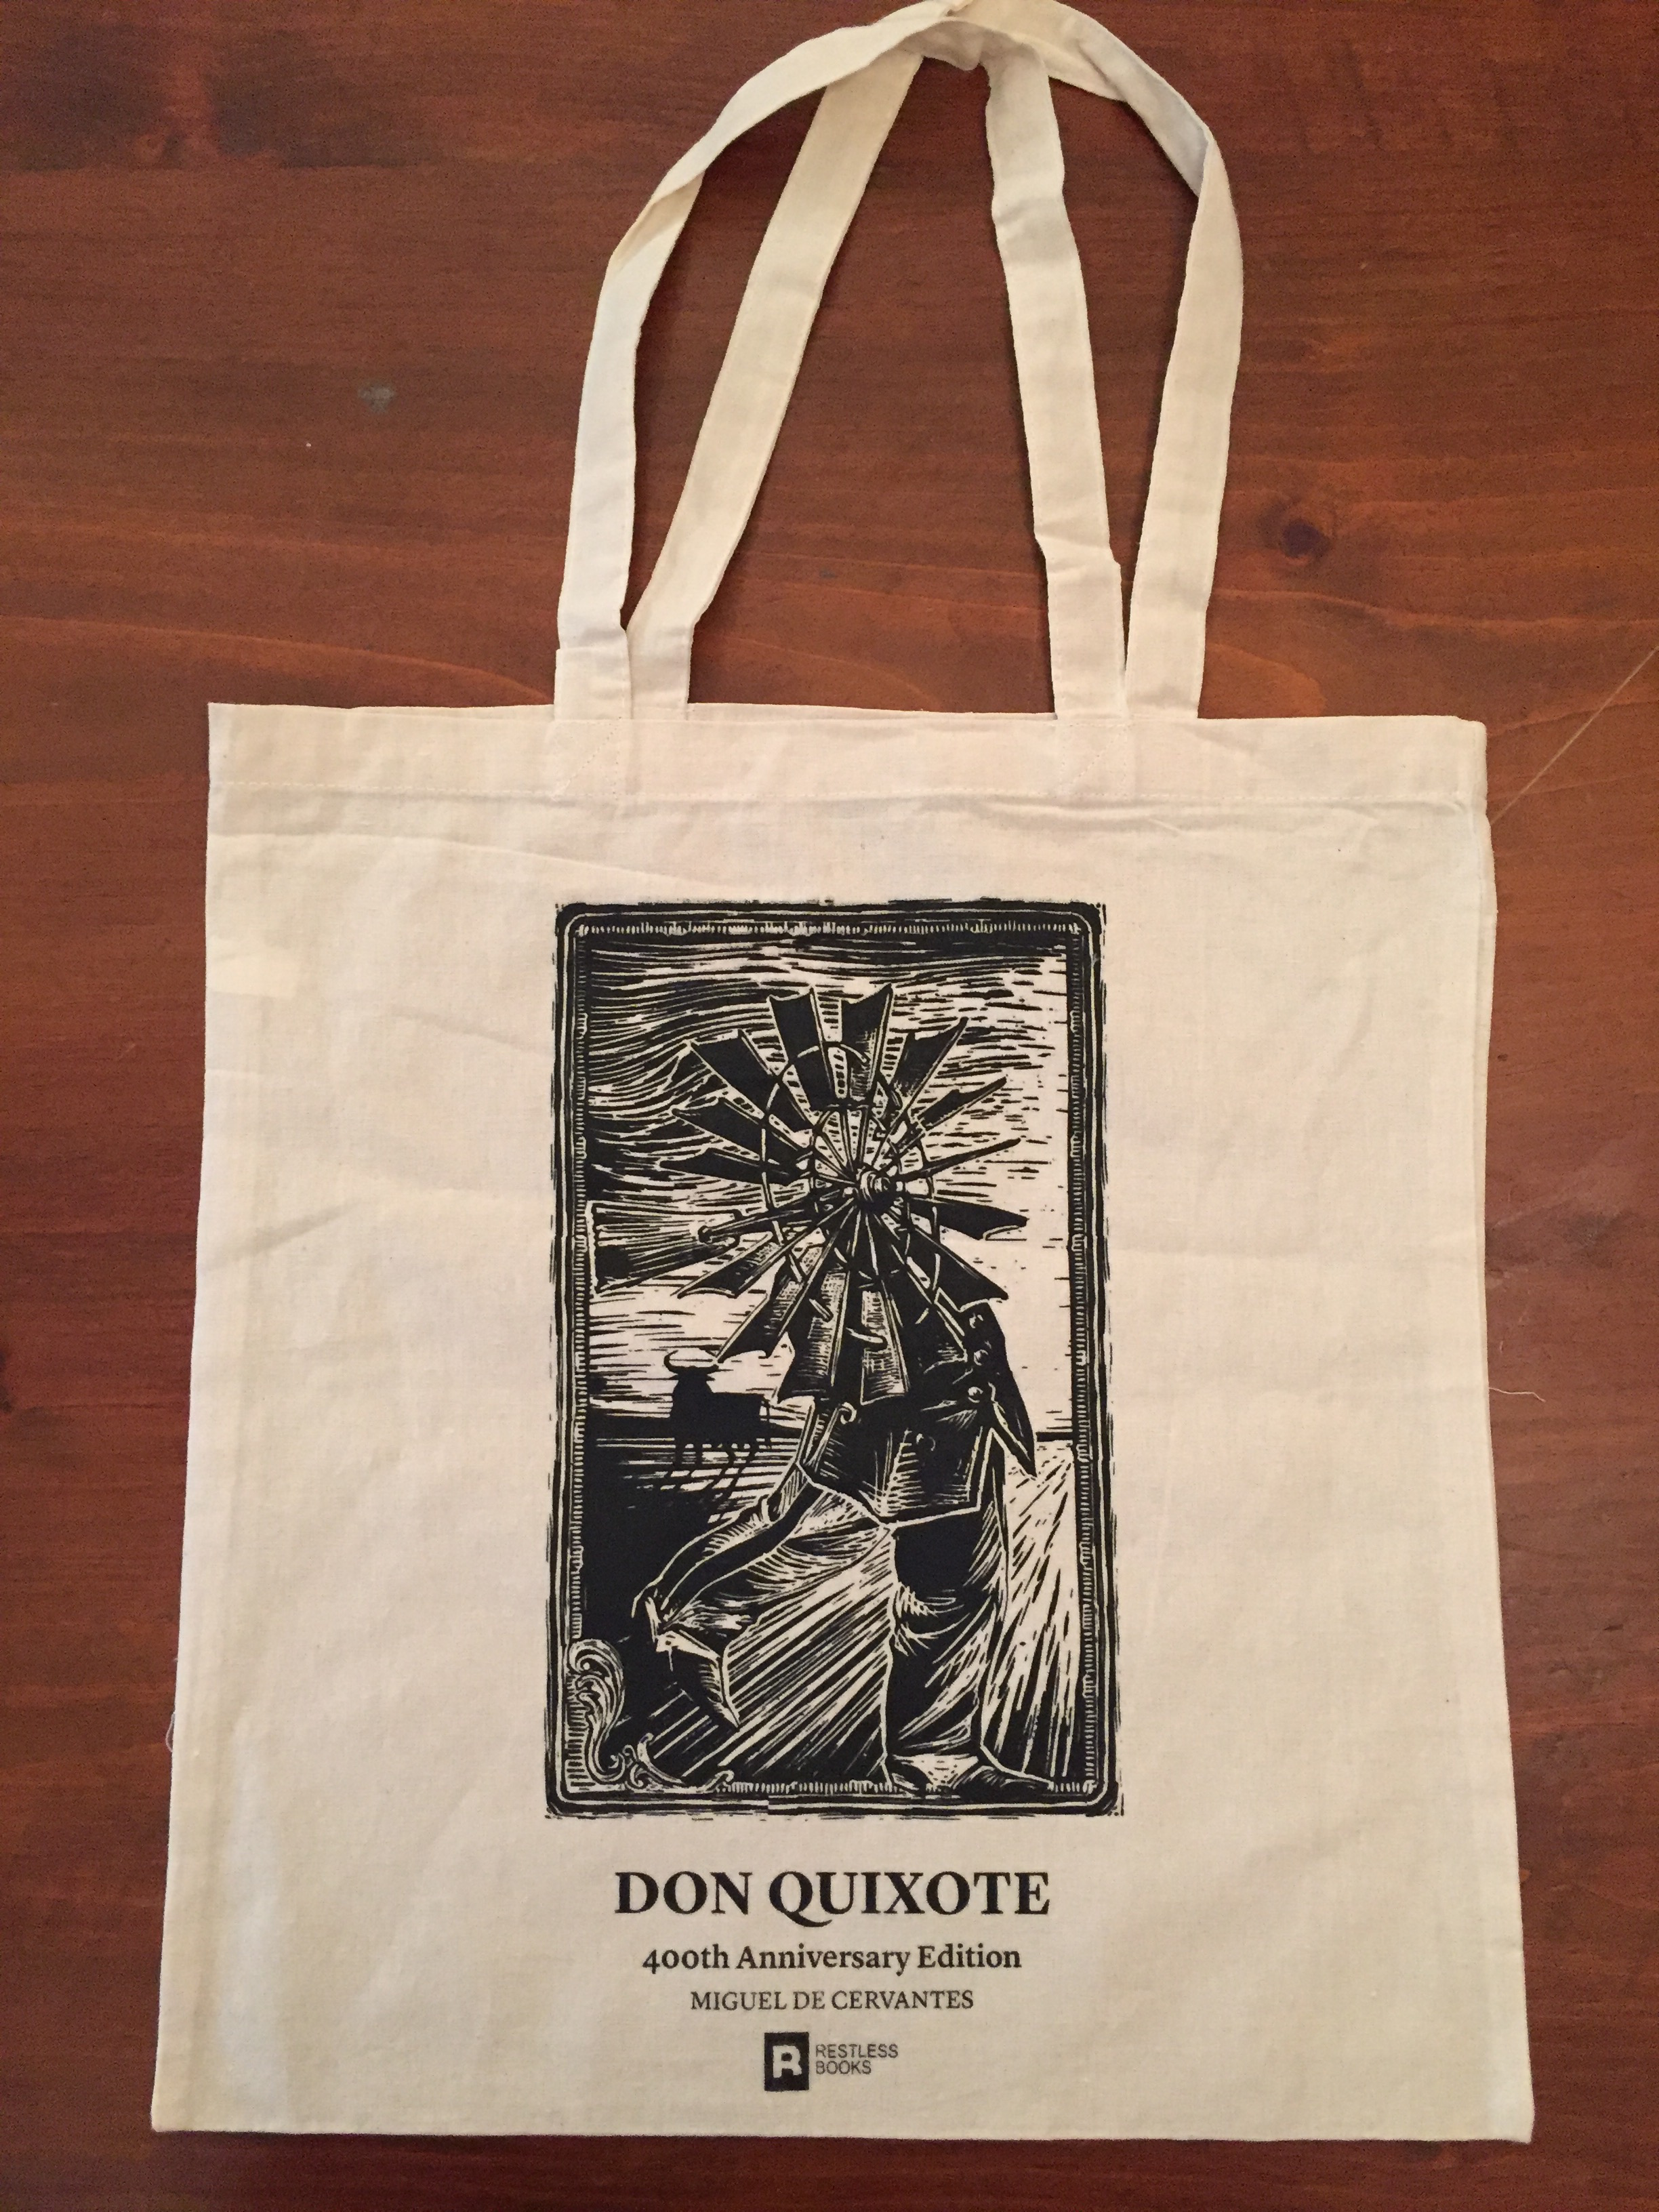 Don Quixote tote Bag - Windmill Giant.JPG